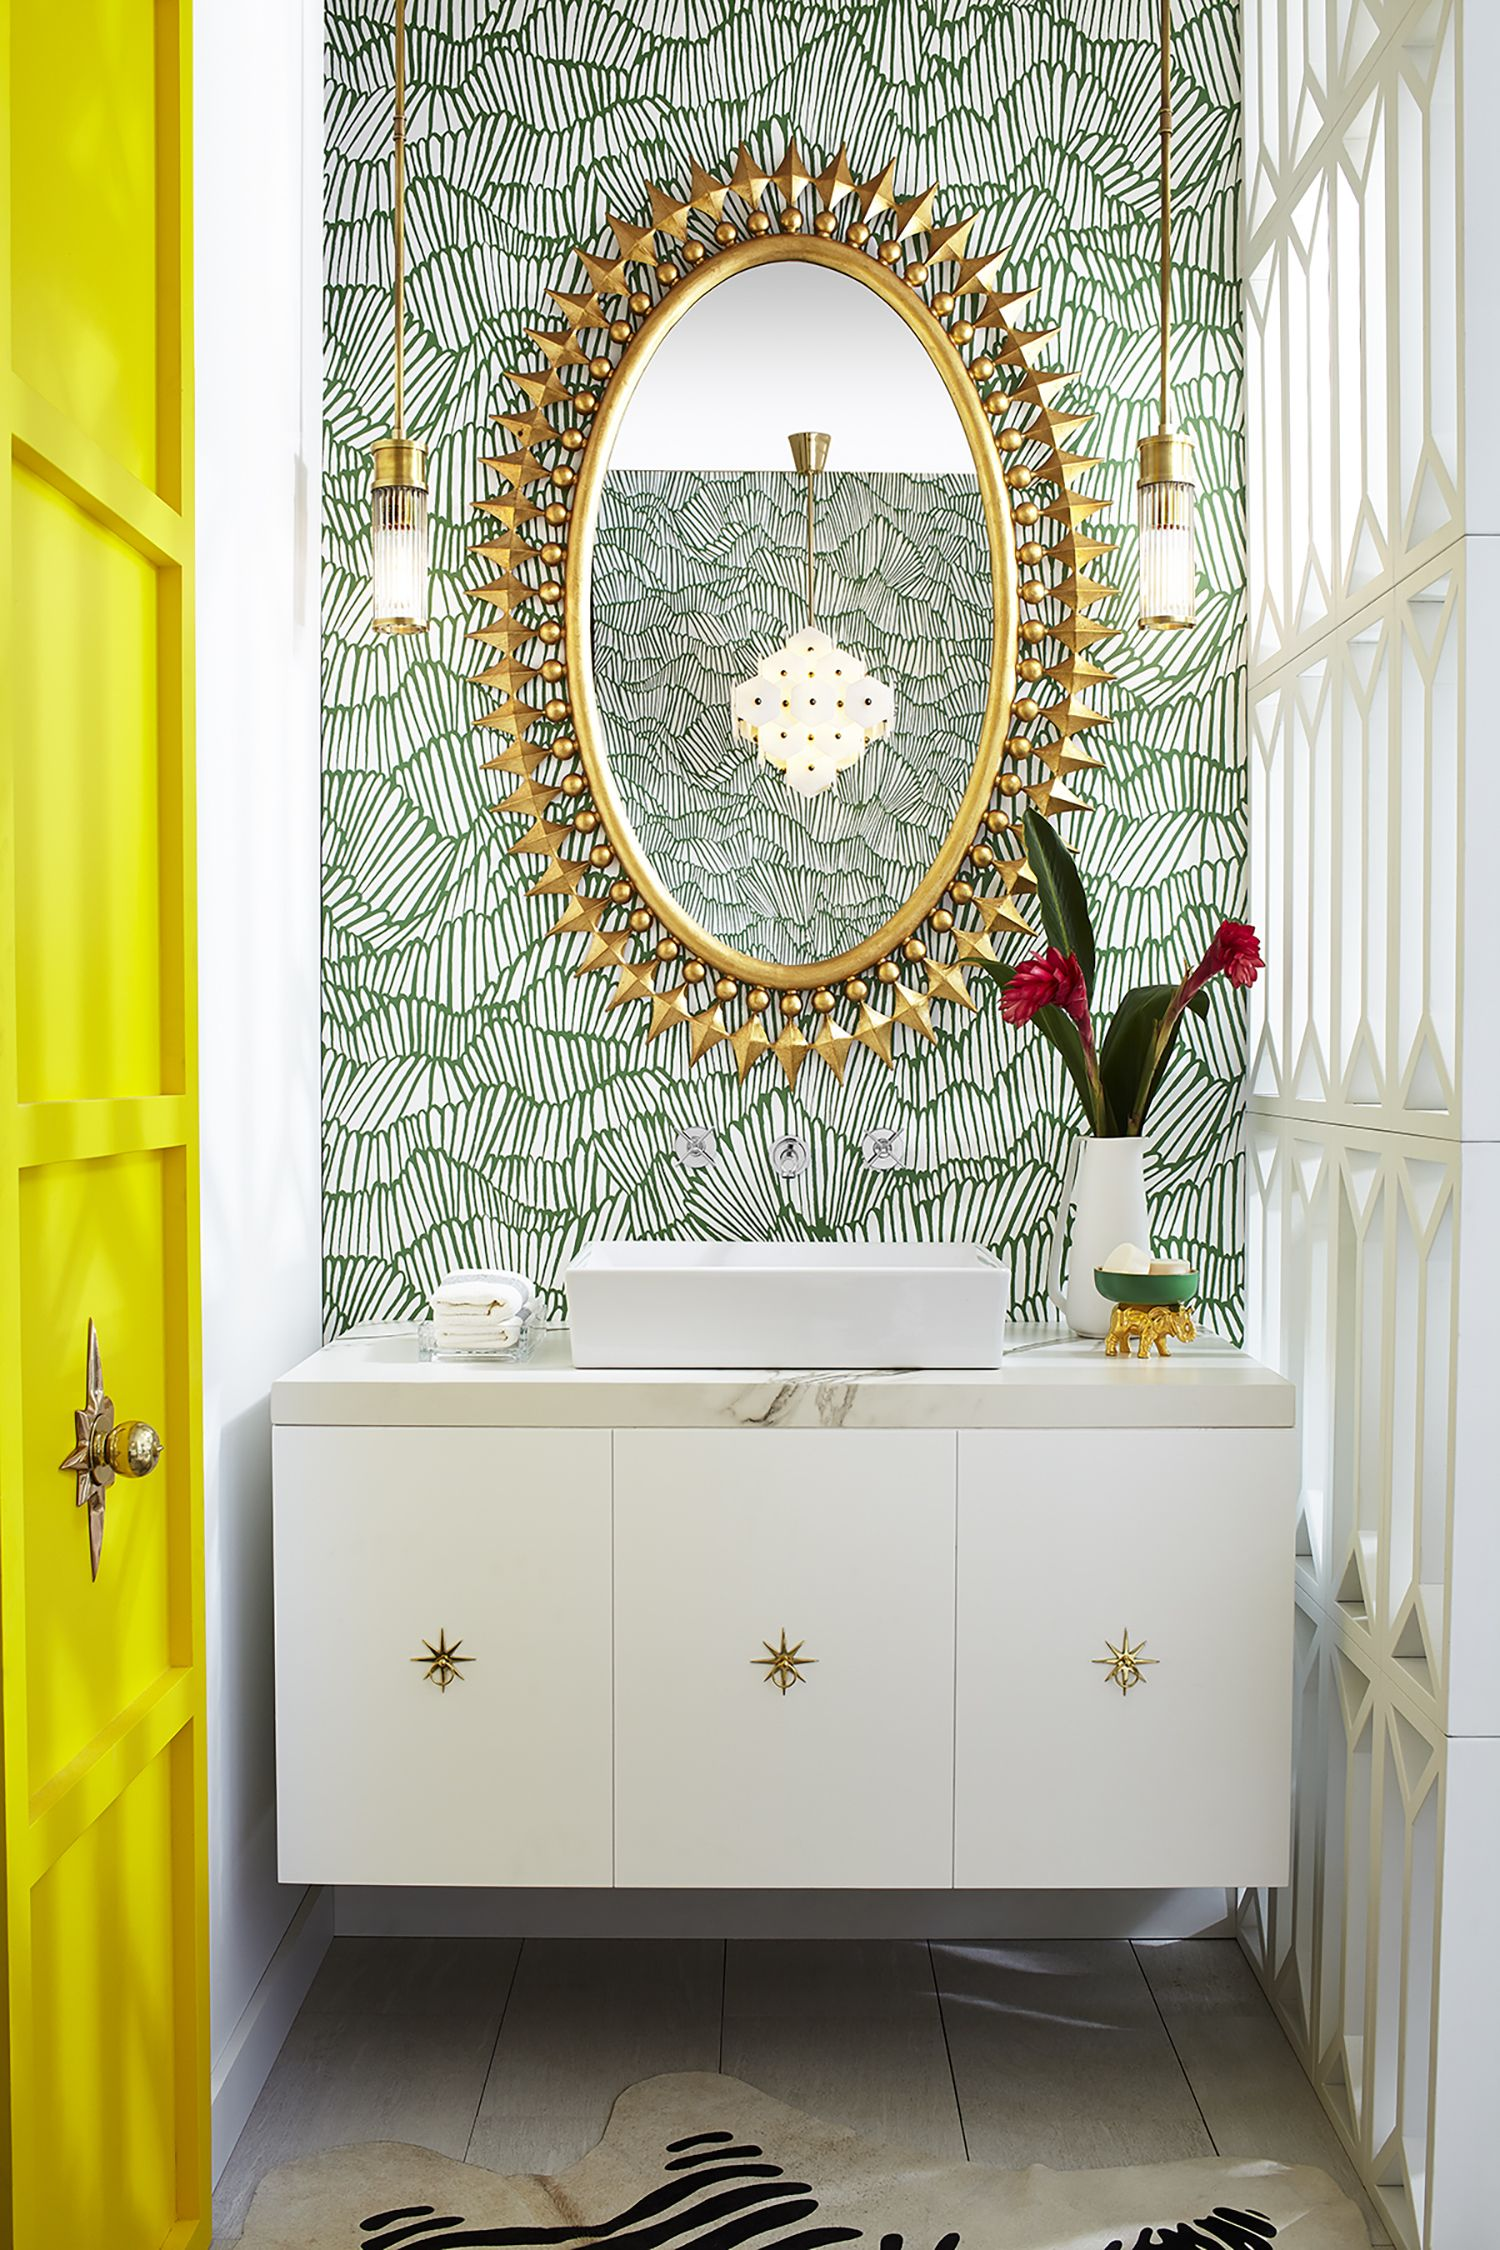 For more quick, quirky design elements, Pulp Design Studios paired our Pop Rectangle Vessel Lavatory and Percy Wall Mounted Vessel Faucet with a custom vanity with starburst pulls and the bold Wellington Mirror by @emporiumhome | countertop by @Dekton_